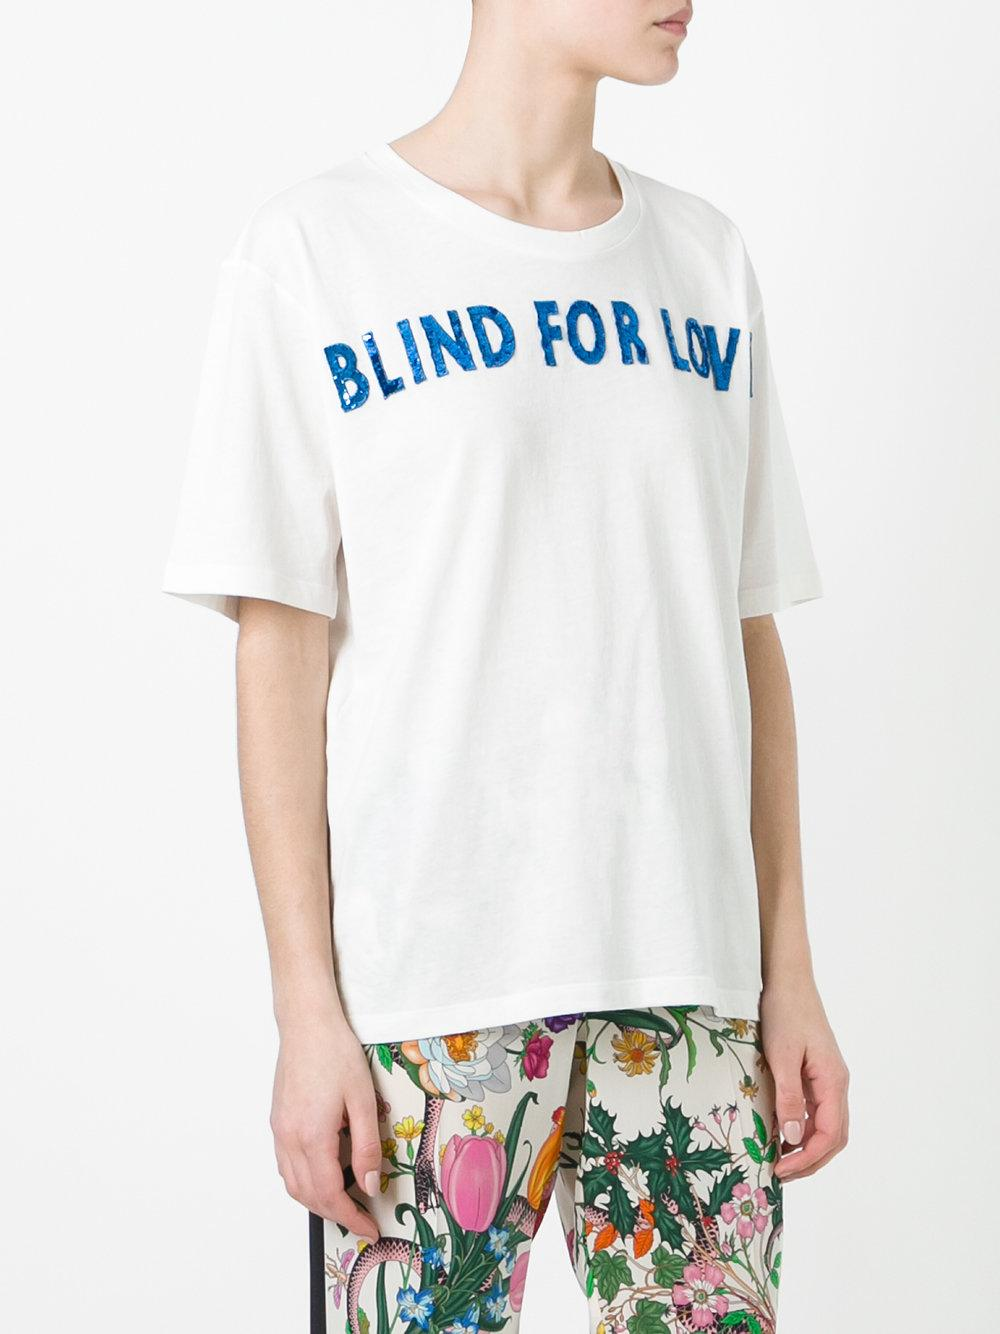 Lyst Gucci Blind For Love T Shirt In White